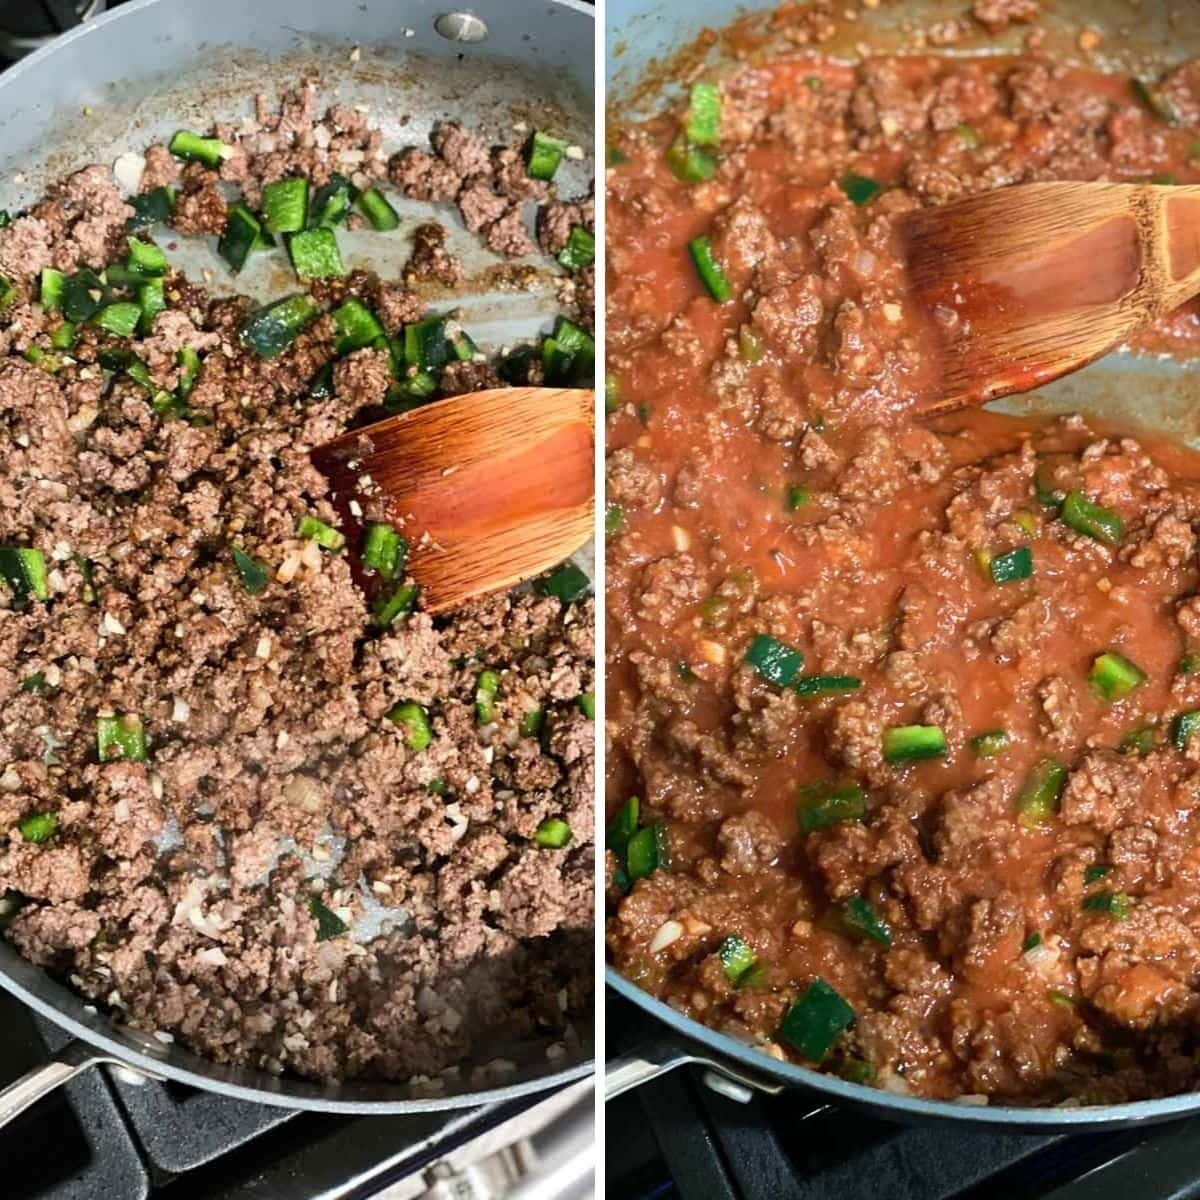 Cooking ground beef and poblano peppers in a pan and then adding tomato sauce